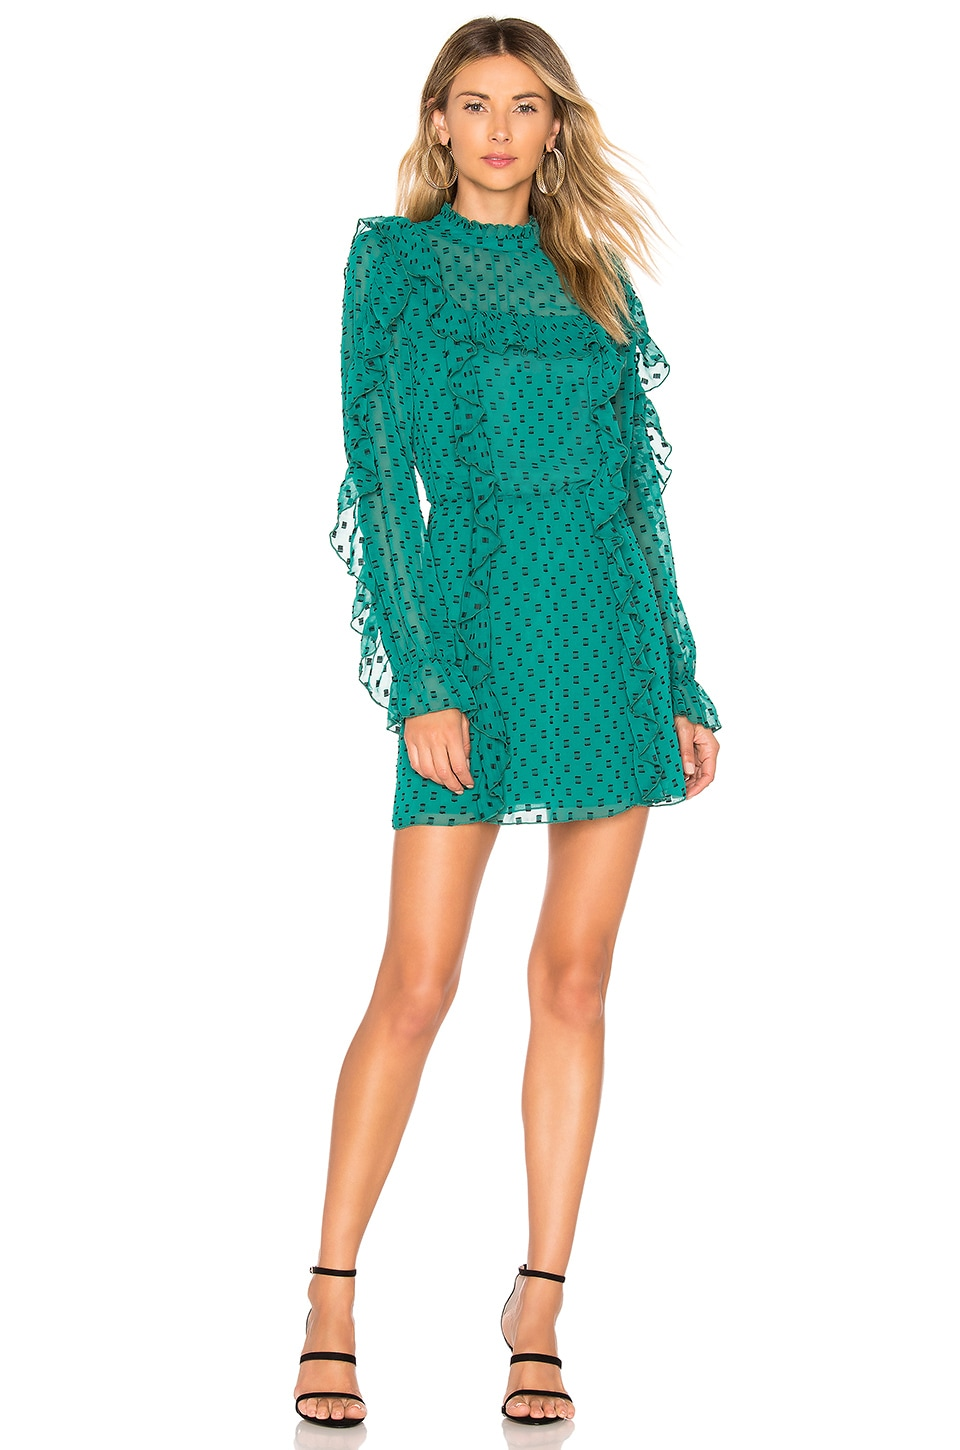 Tularosa Harlow Dress in Teal